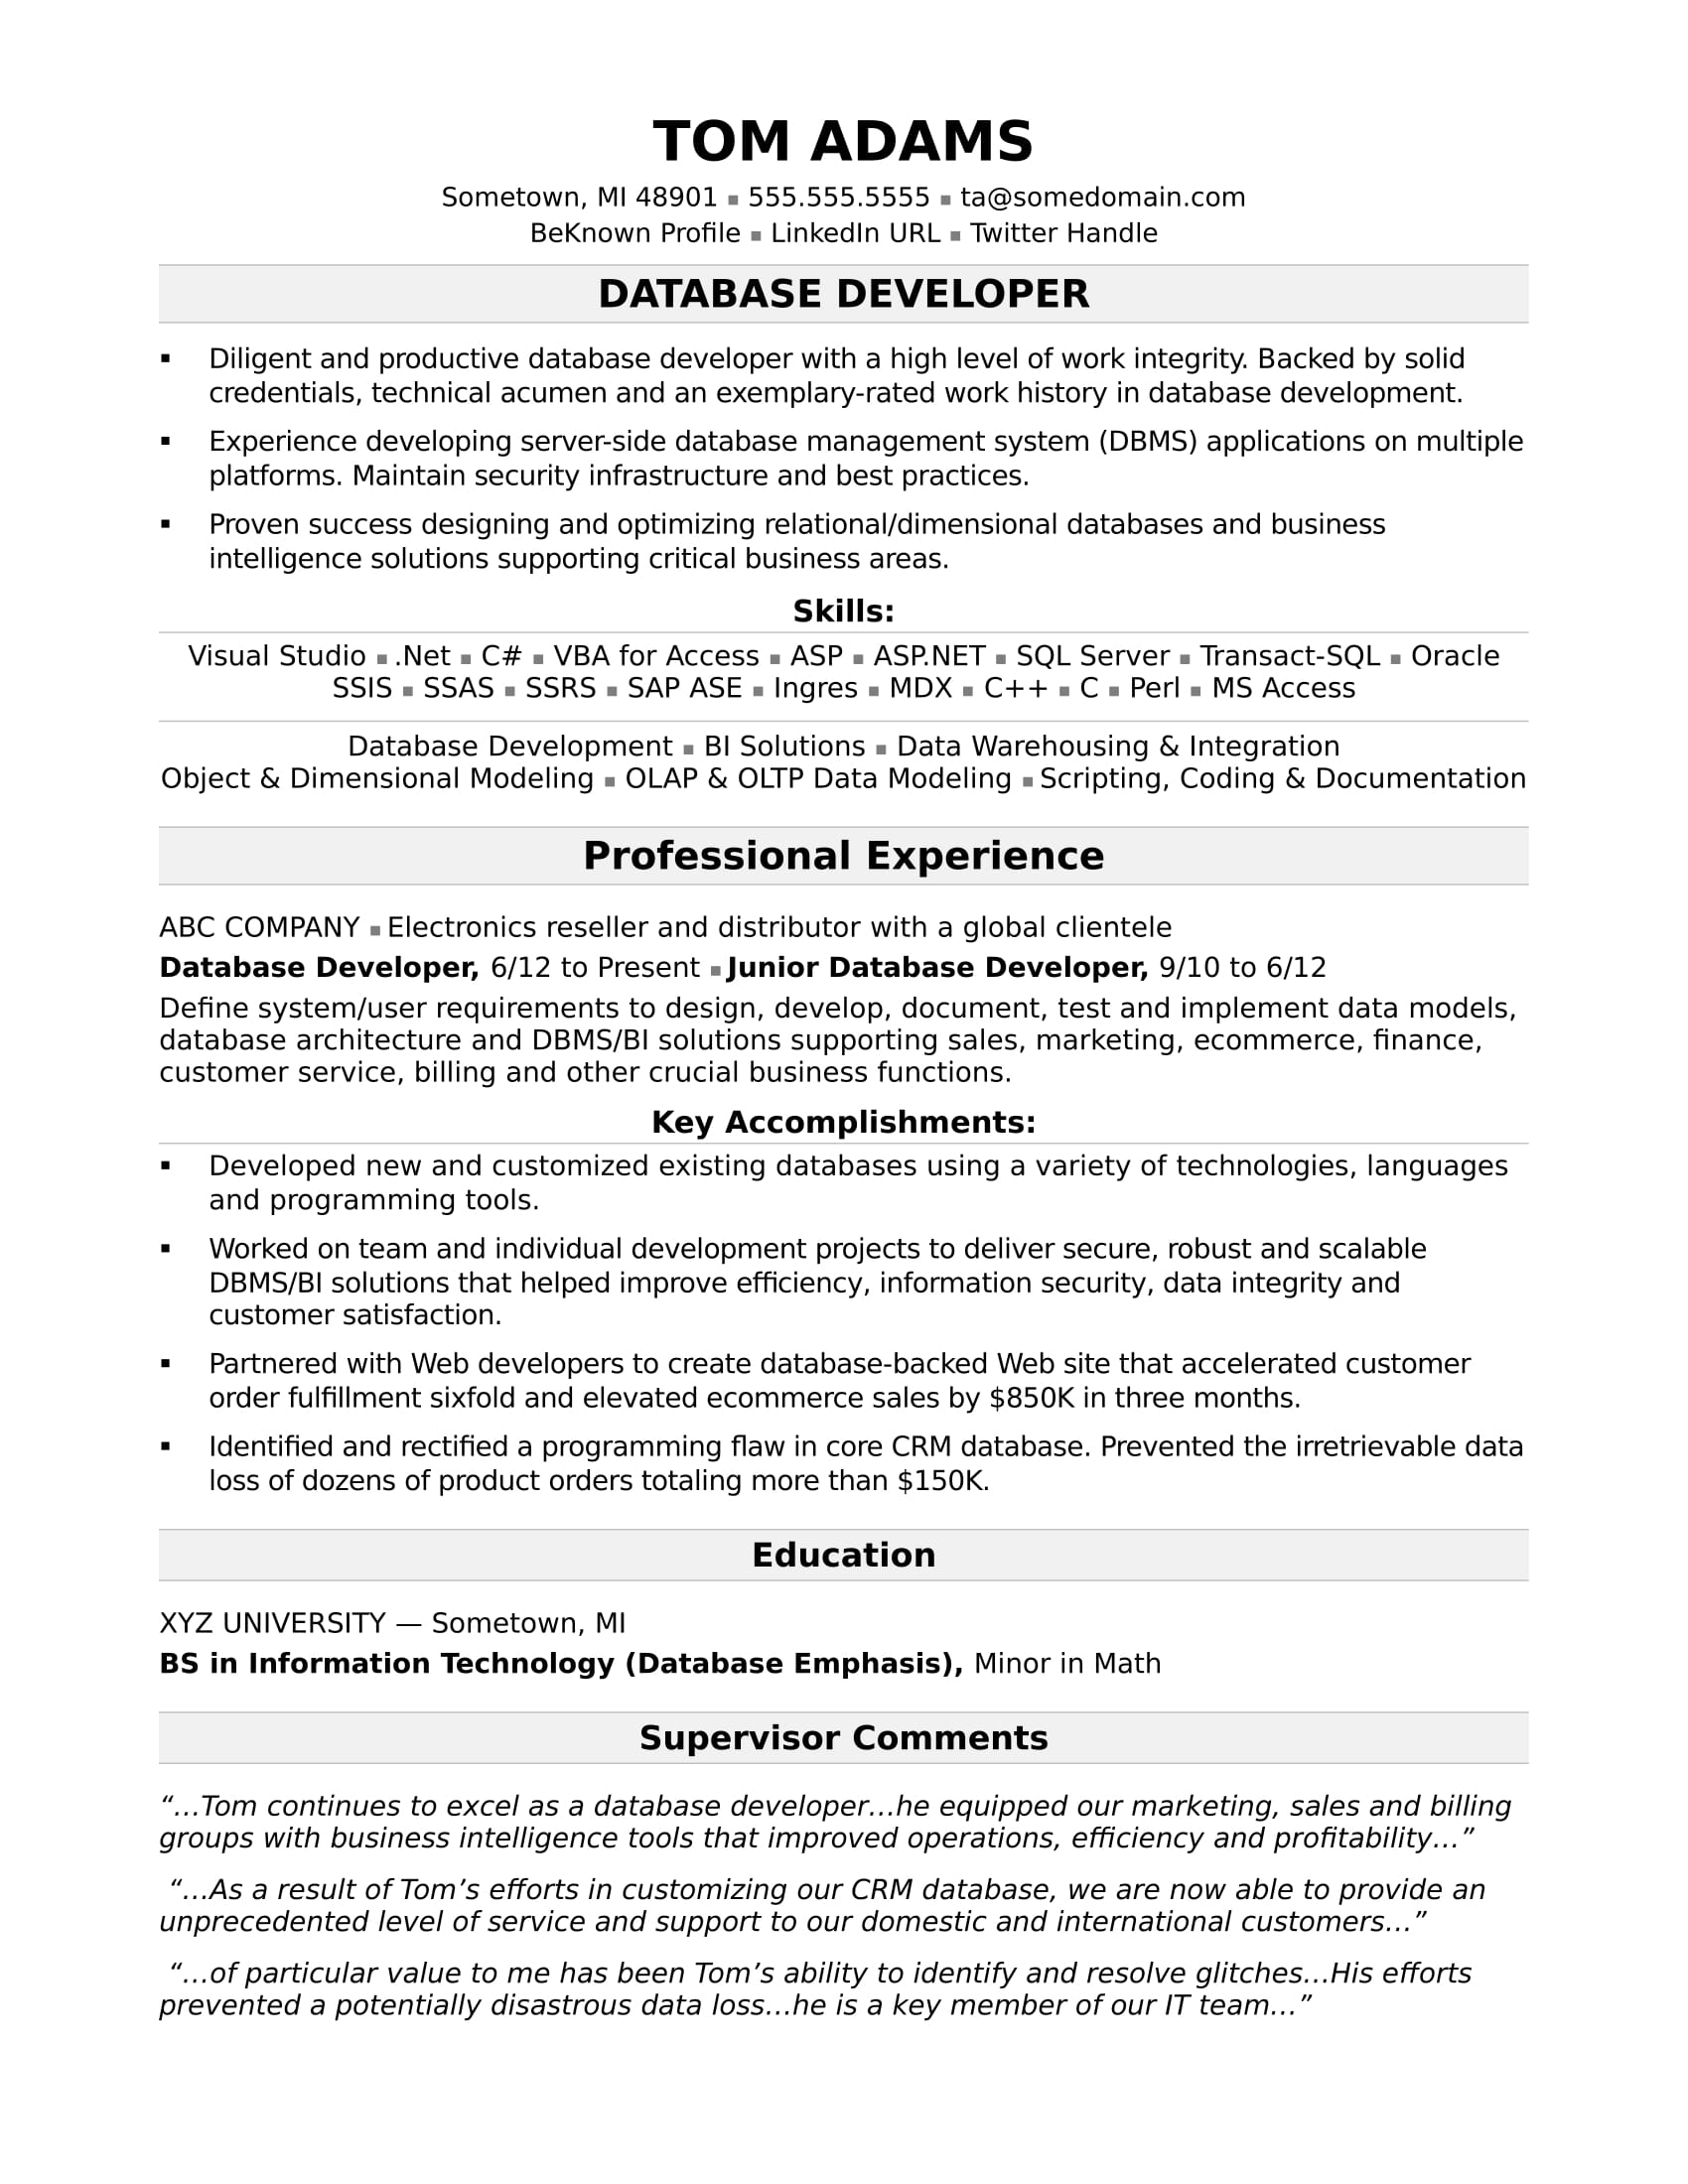 sample resume with professional development